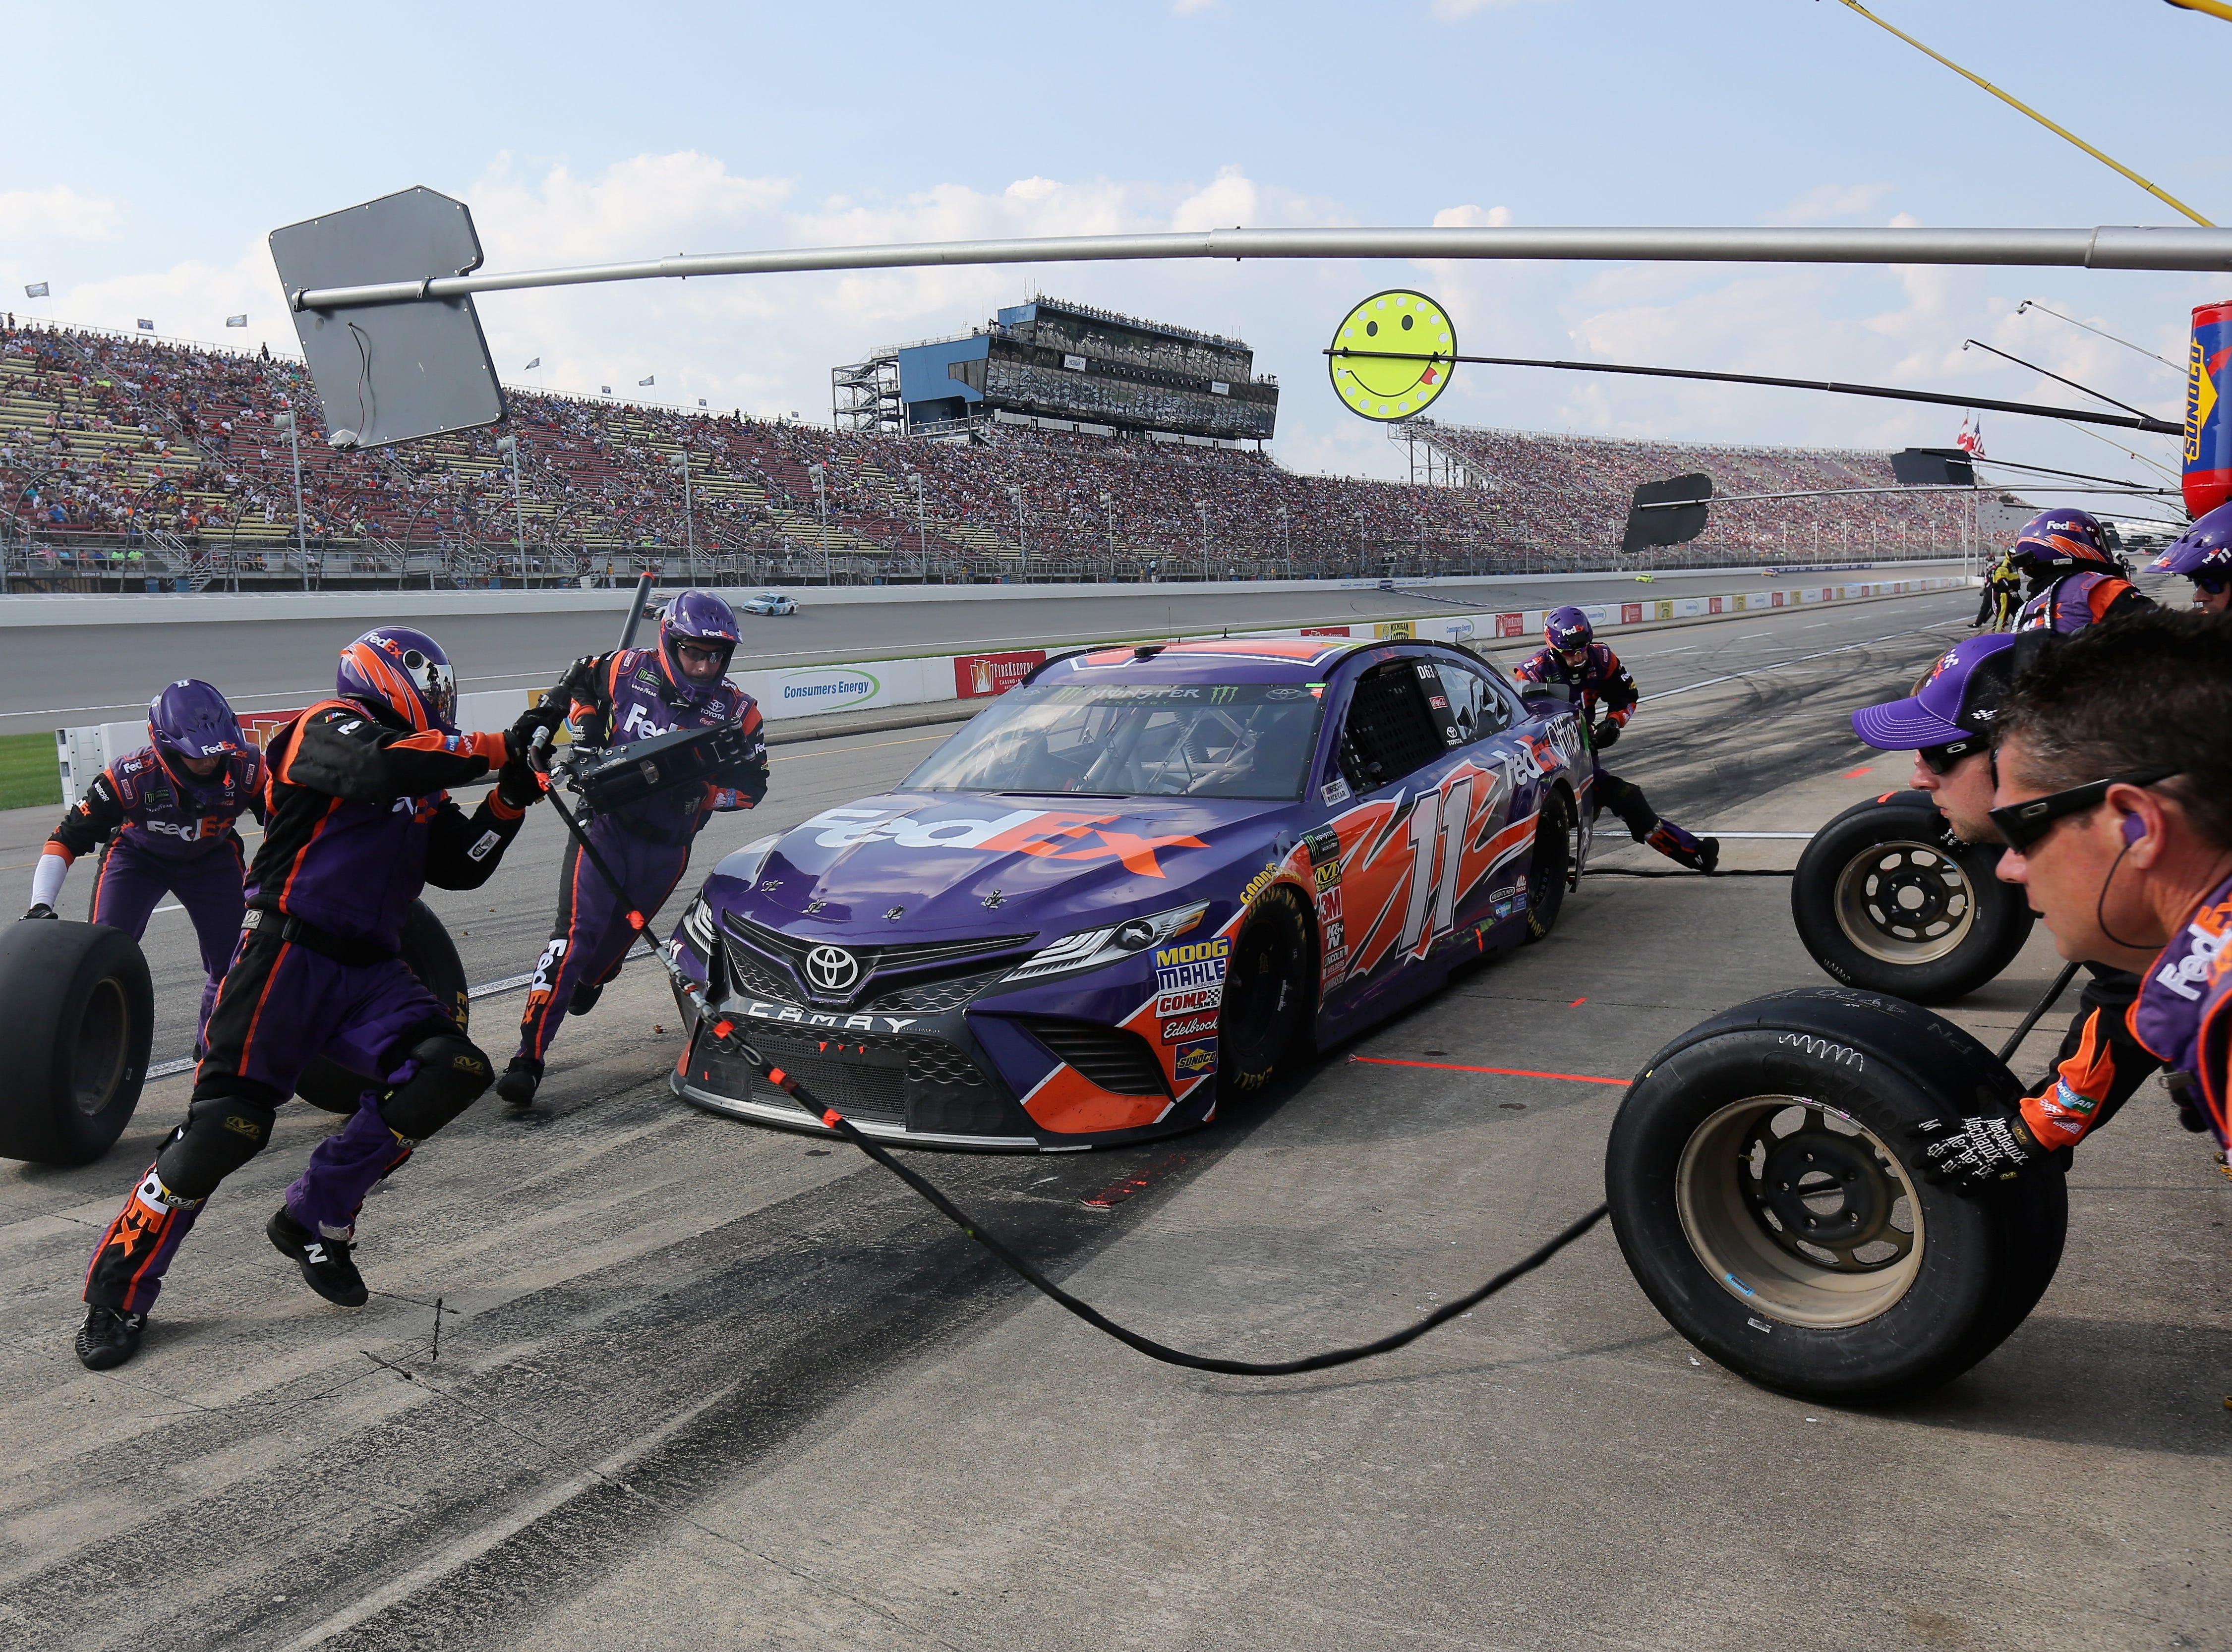 Denny Hamlin, driver of the #11 FedEx Office Toyota, pits  during the Monster Energy NASCAR Cup Series Consmers Energy 400 at Michigan International Speedway.